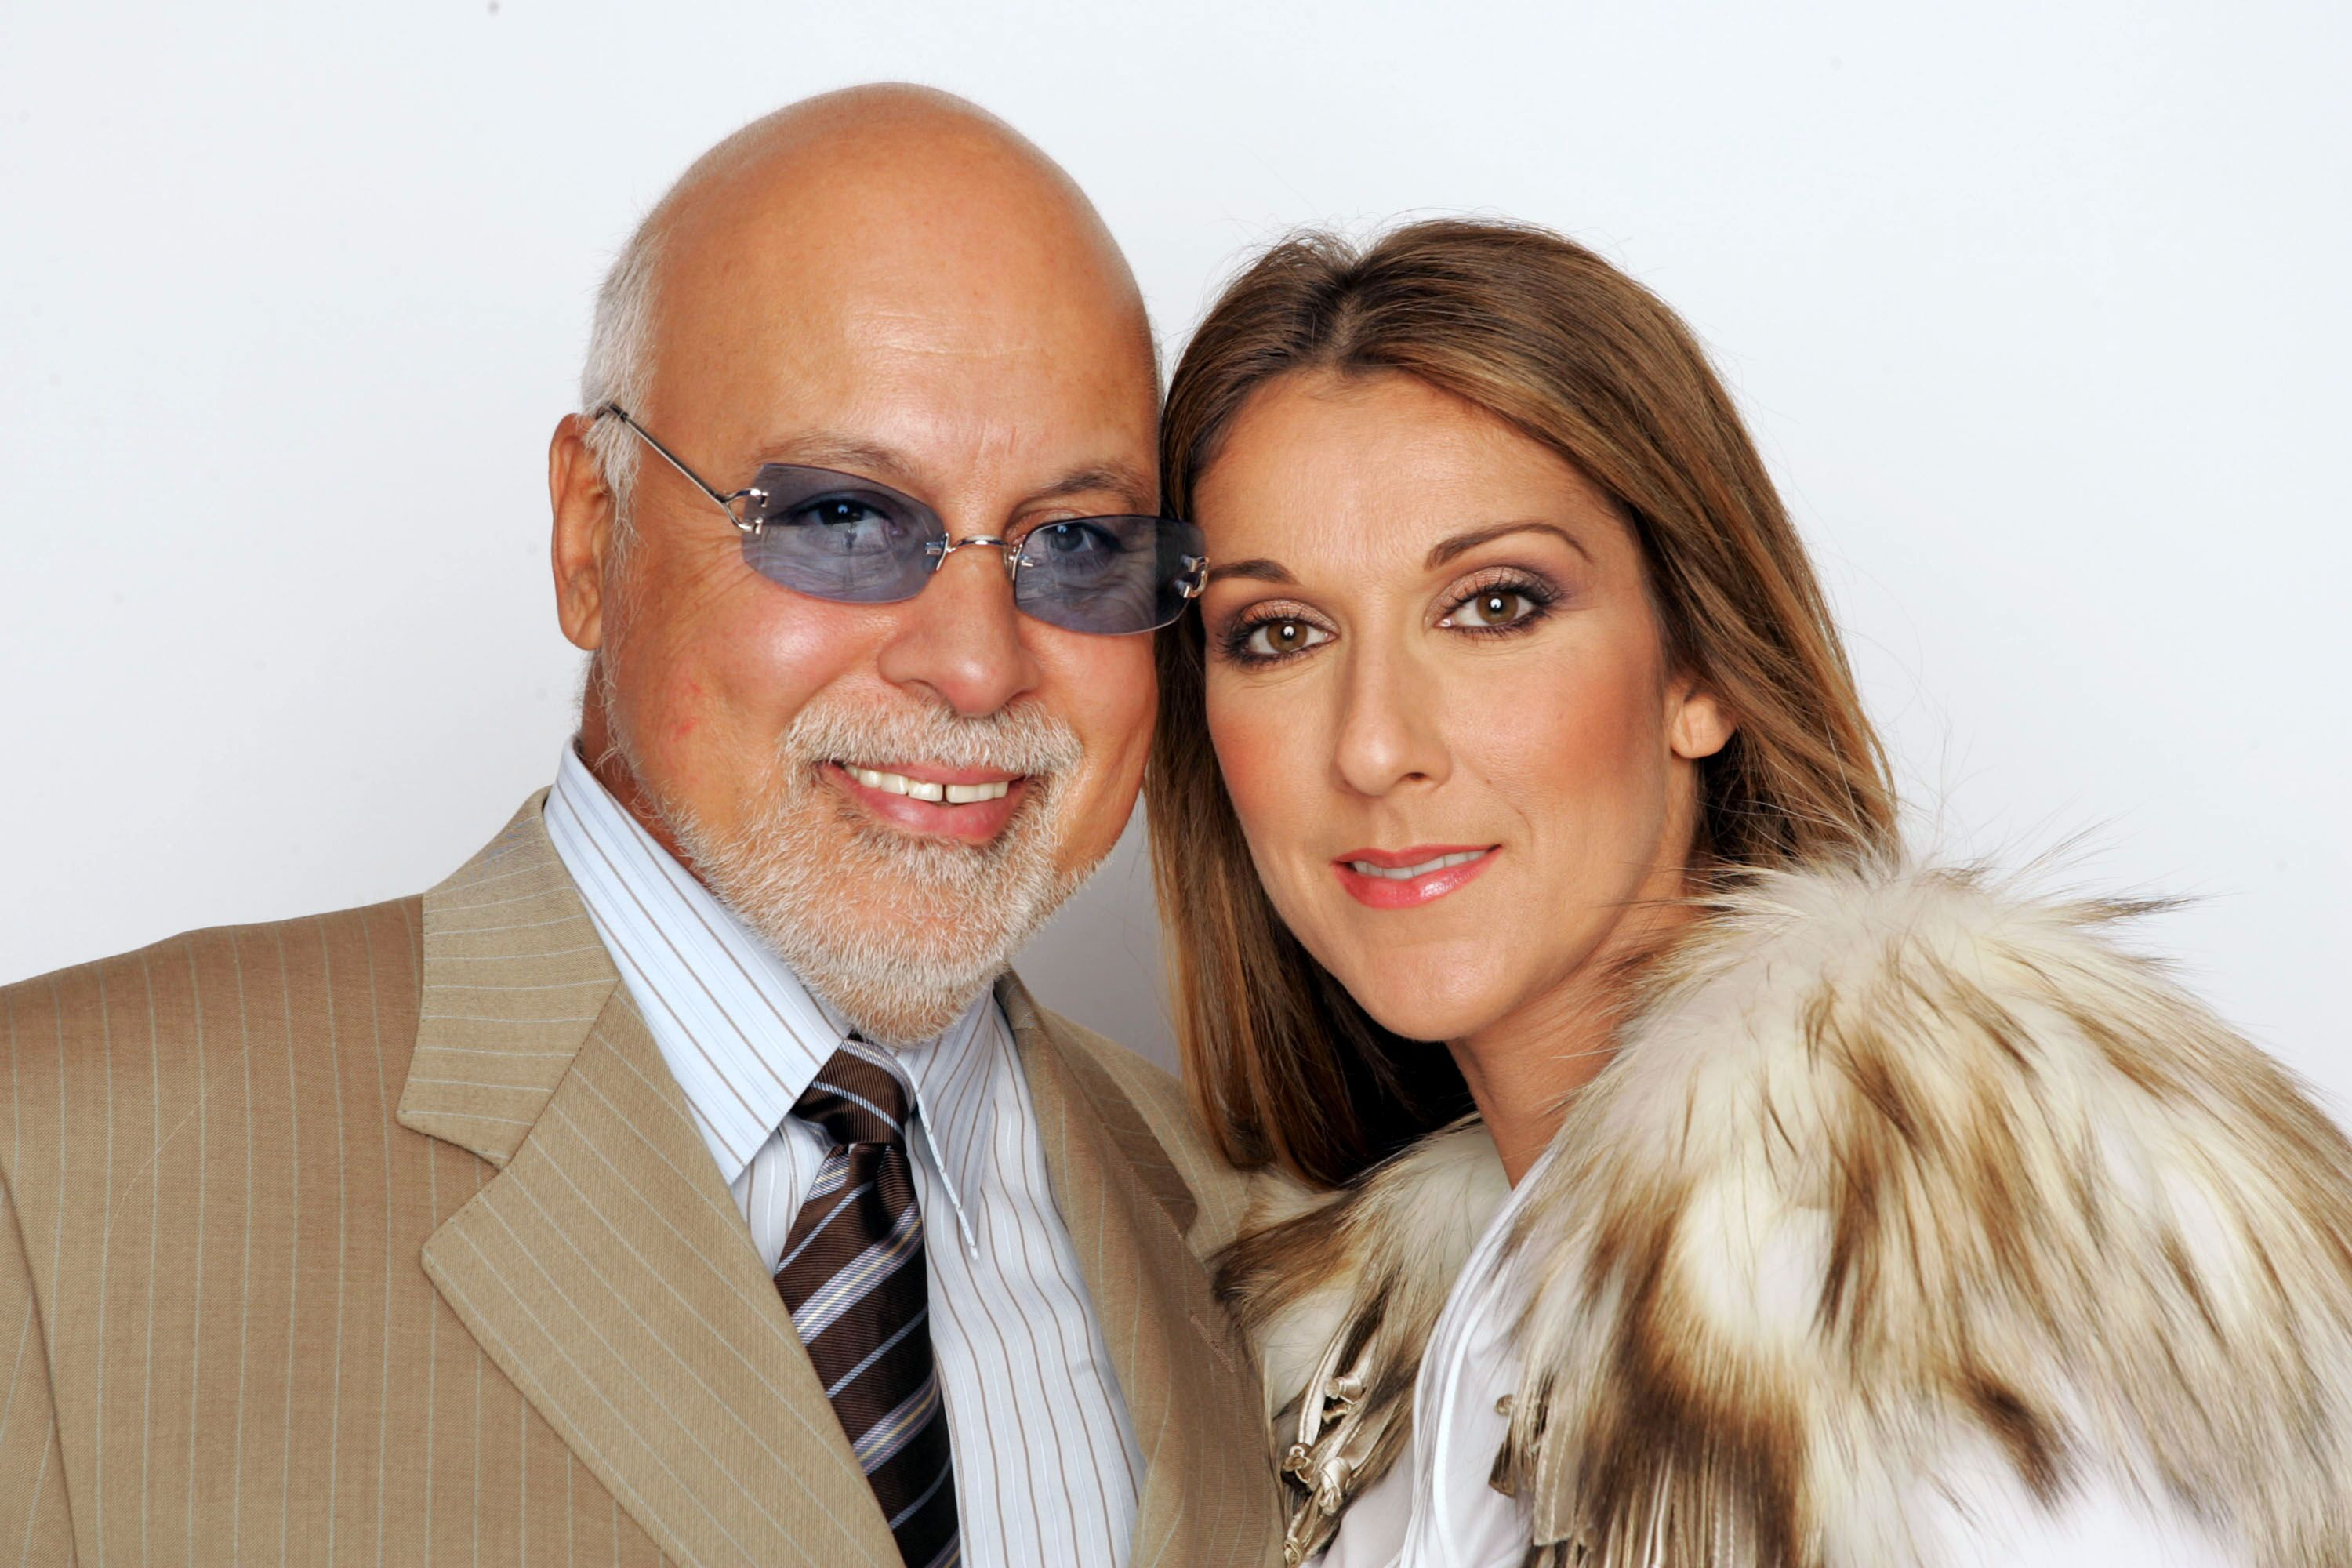 Celine Dion and her husband Rene Angelil pose for a picture backstage during the 2004 World Music Awards at the Thomas and Mack Center on September 15, 2004 in Las Vegas, Nevada | Photo: Getty Images